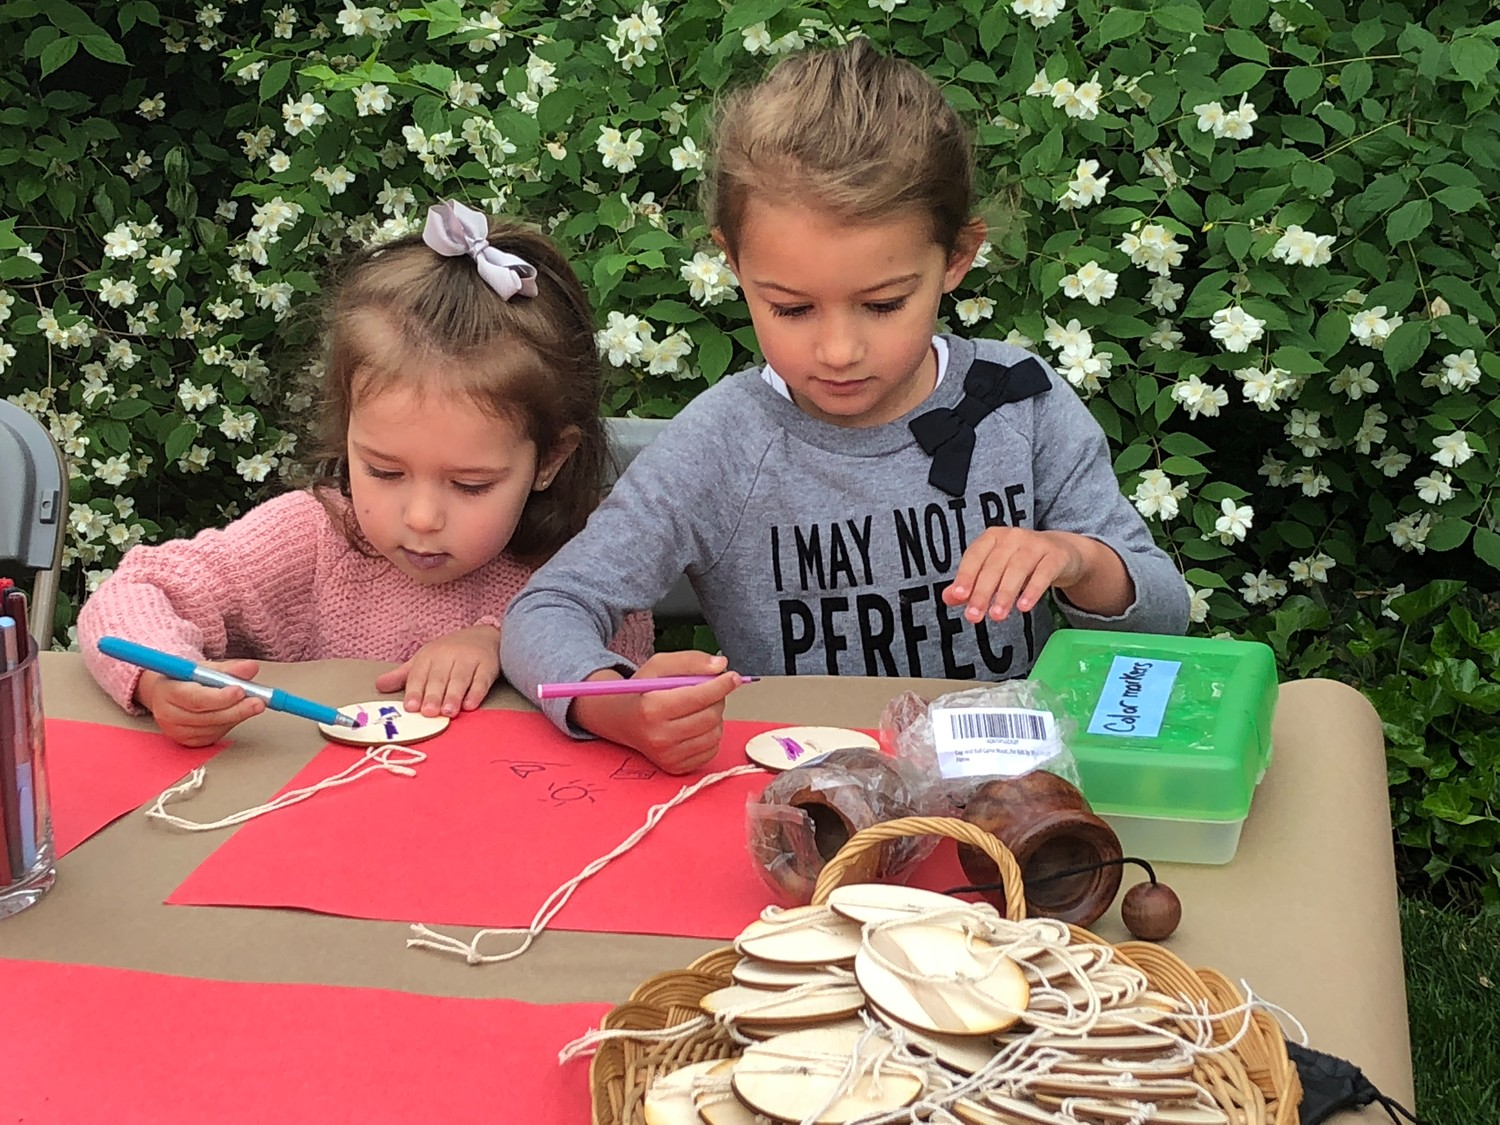 Katerina and Dimitra Belesis, 4 and 3, enjoyed the arts and crafts at Raynham Hall.